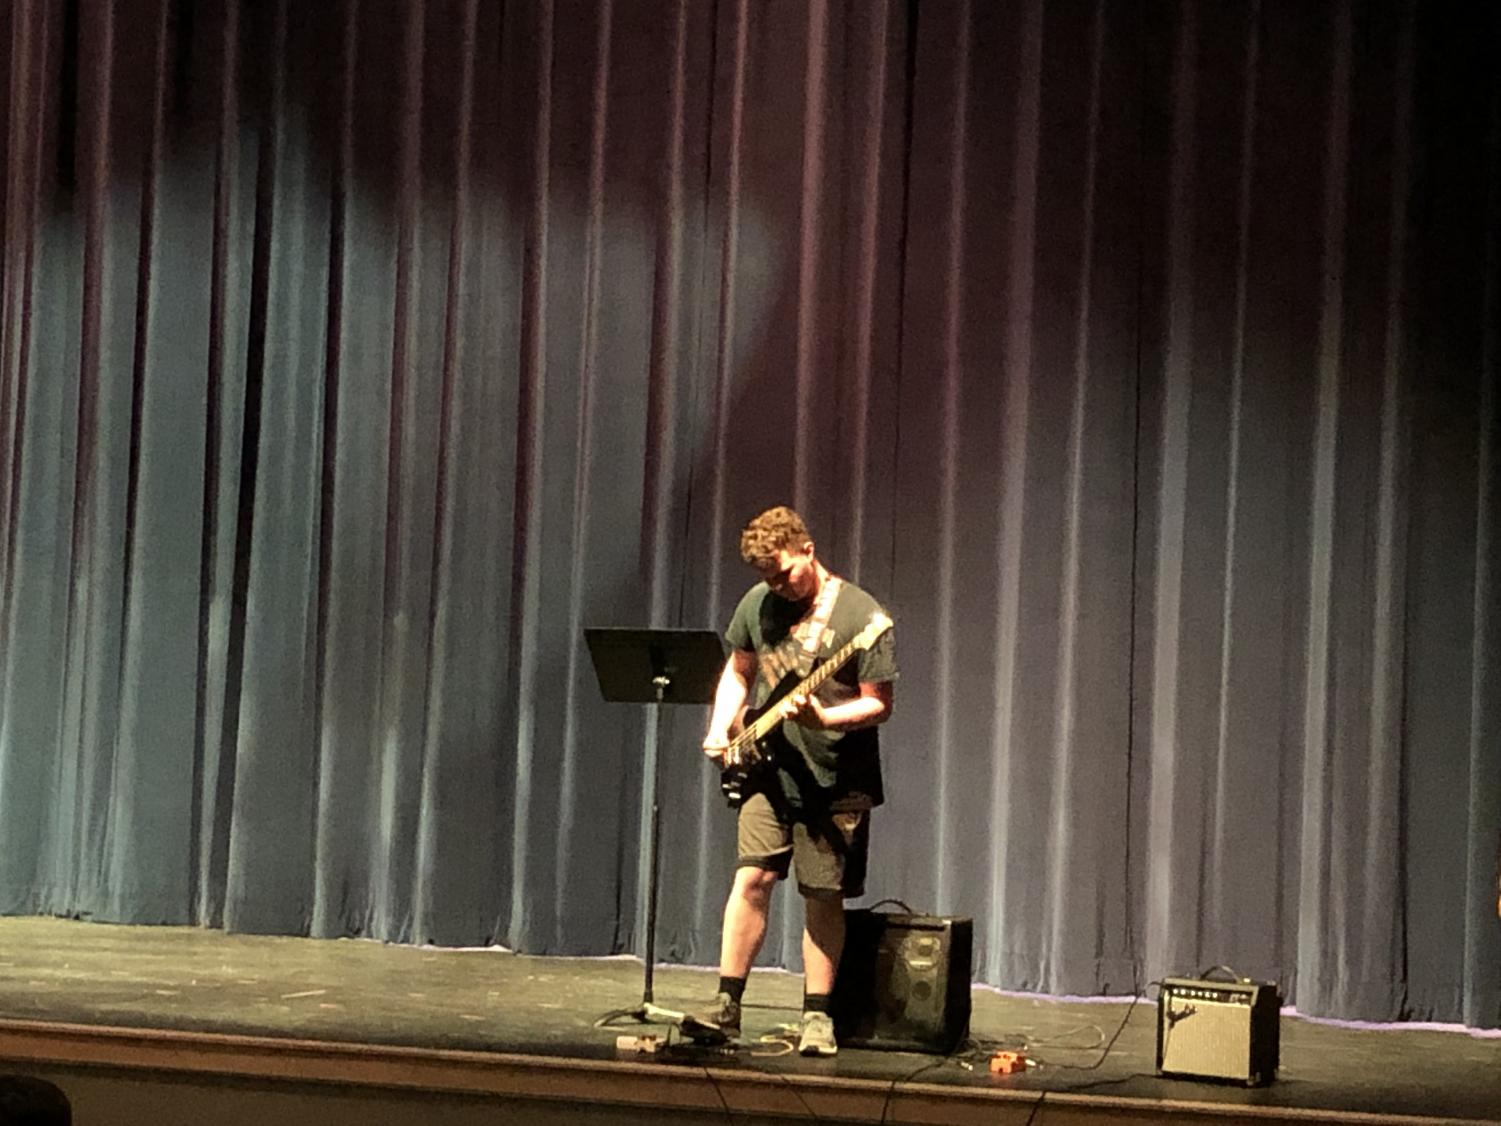 Josh Whitman, a freshman at Abington High School, performs at Open Mic Night on May 8, 2019